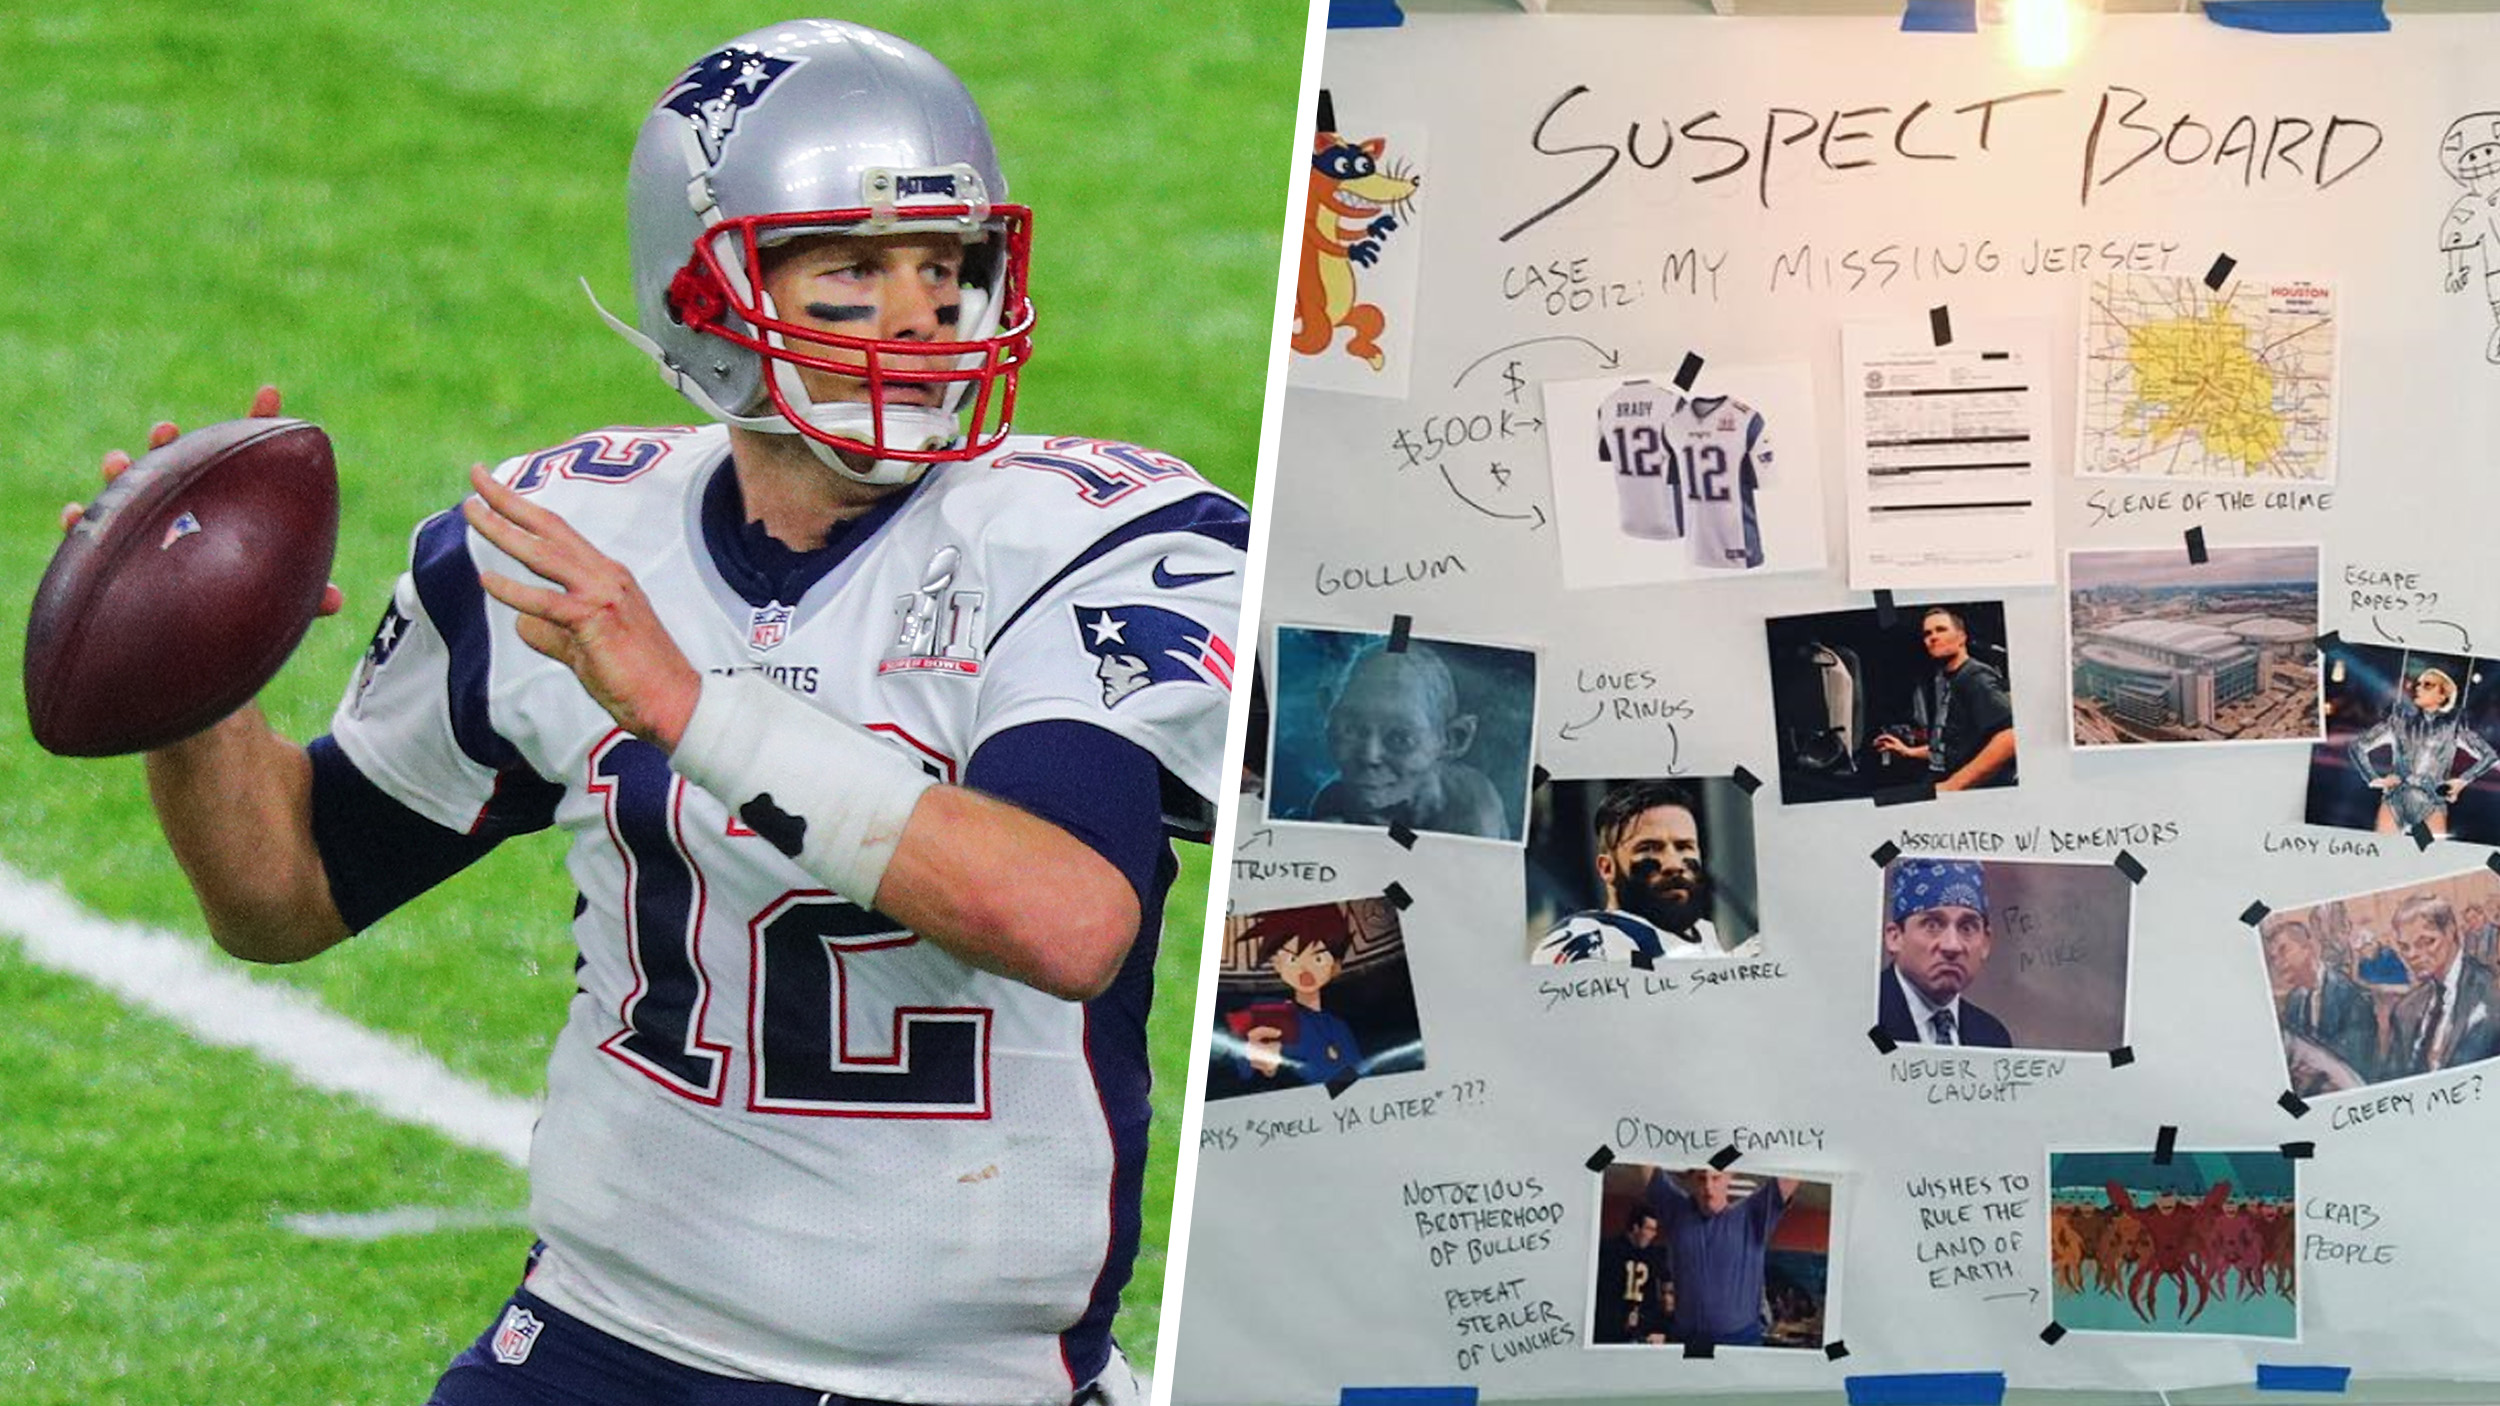 Tom Brady posts 'suspect board' to track down his missing Super ...